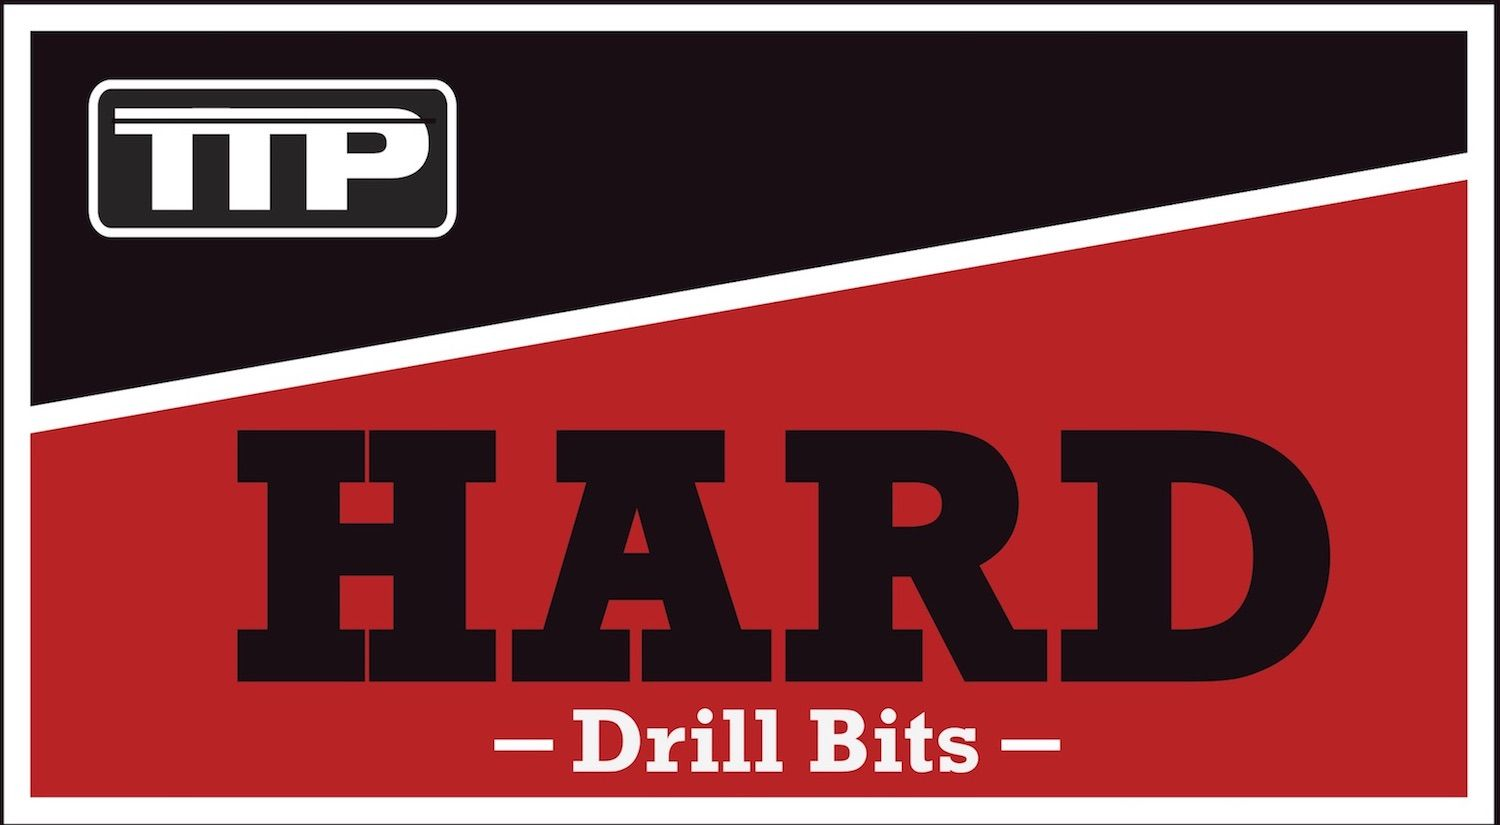 TTP HARD drills.com Logo